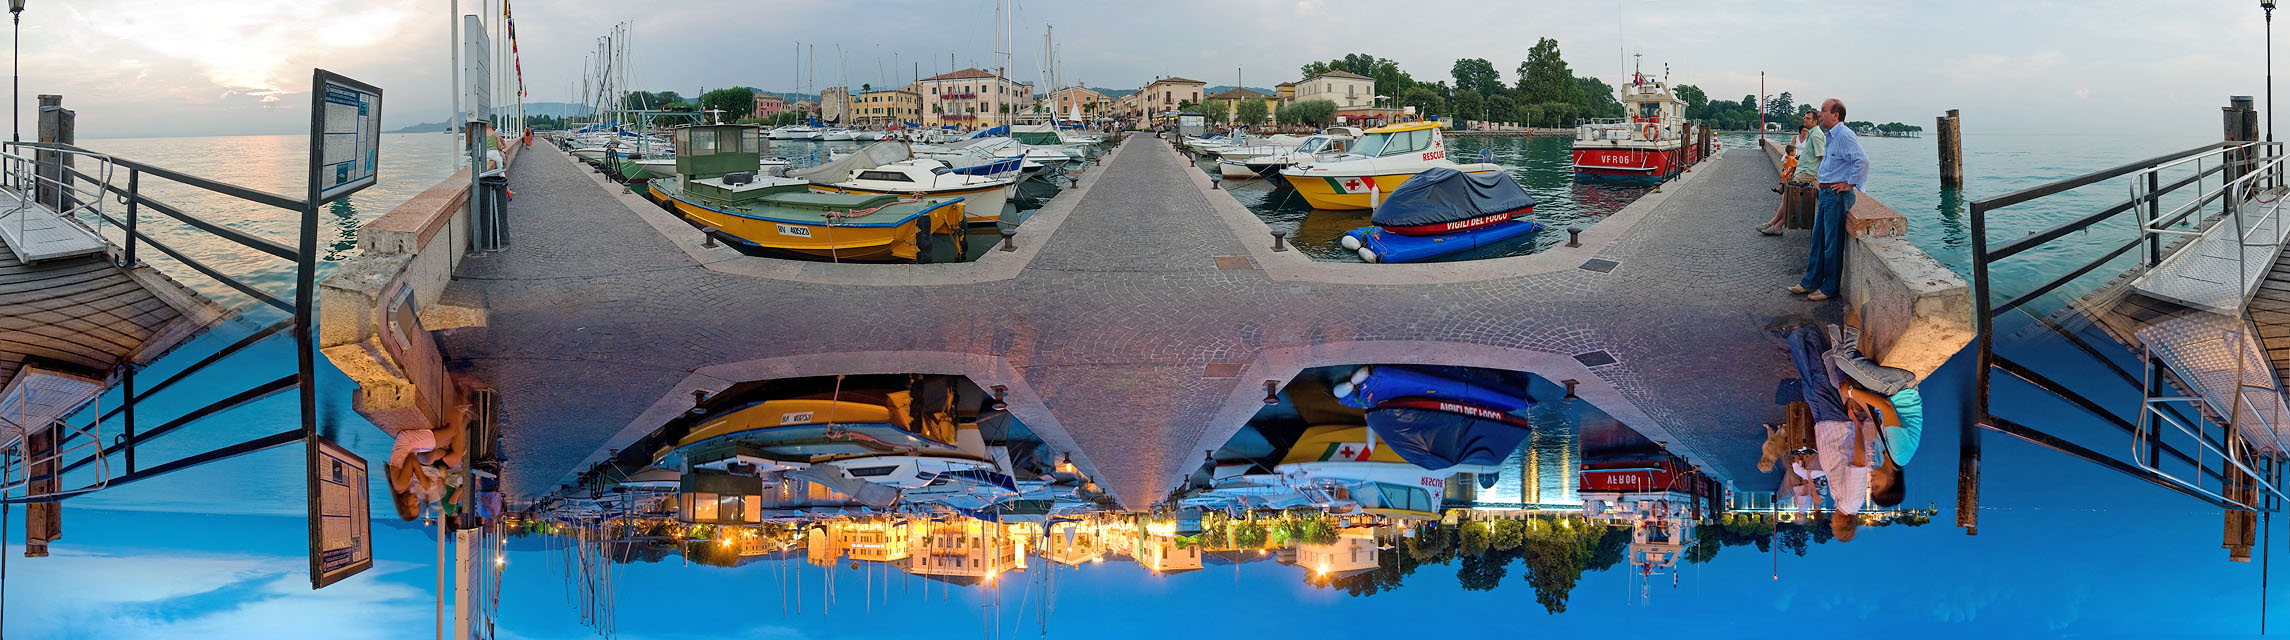 Bardolino harbor at day and night